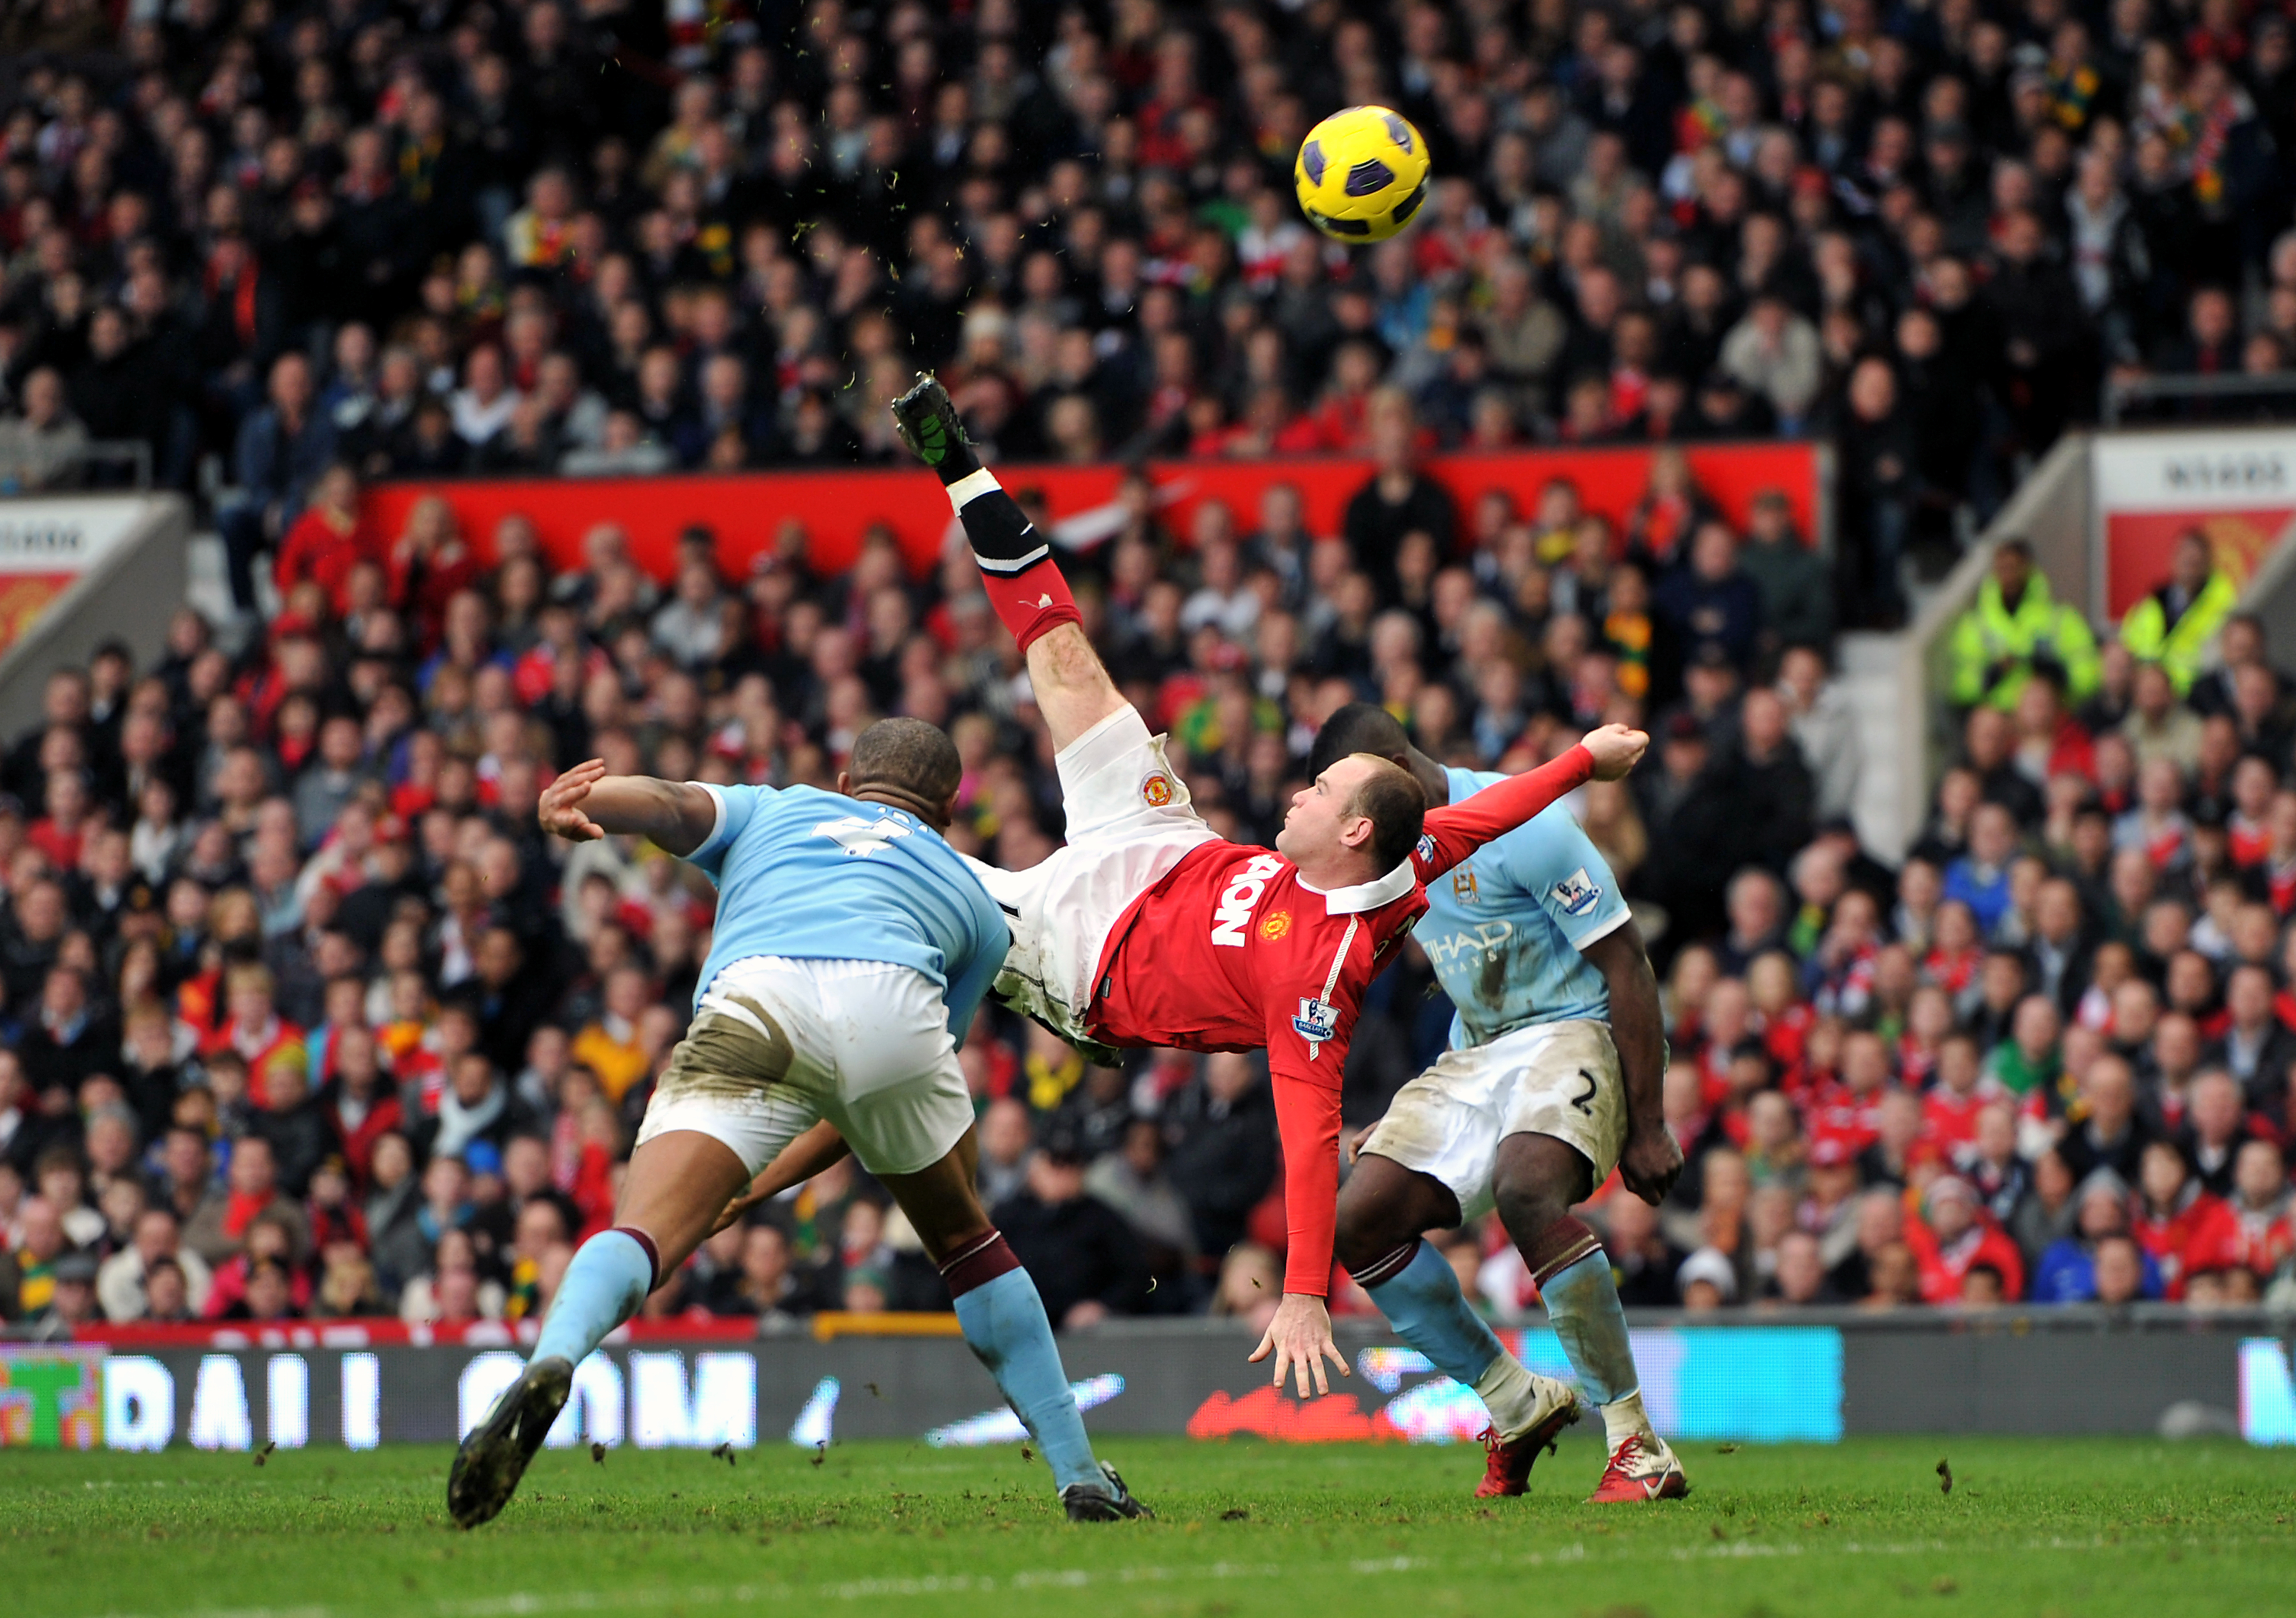 Wayne Rooney scored 253 goals for Manchester United including this overhead kick against Manchester City in 2011